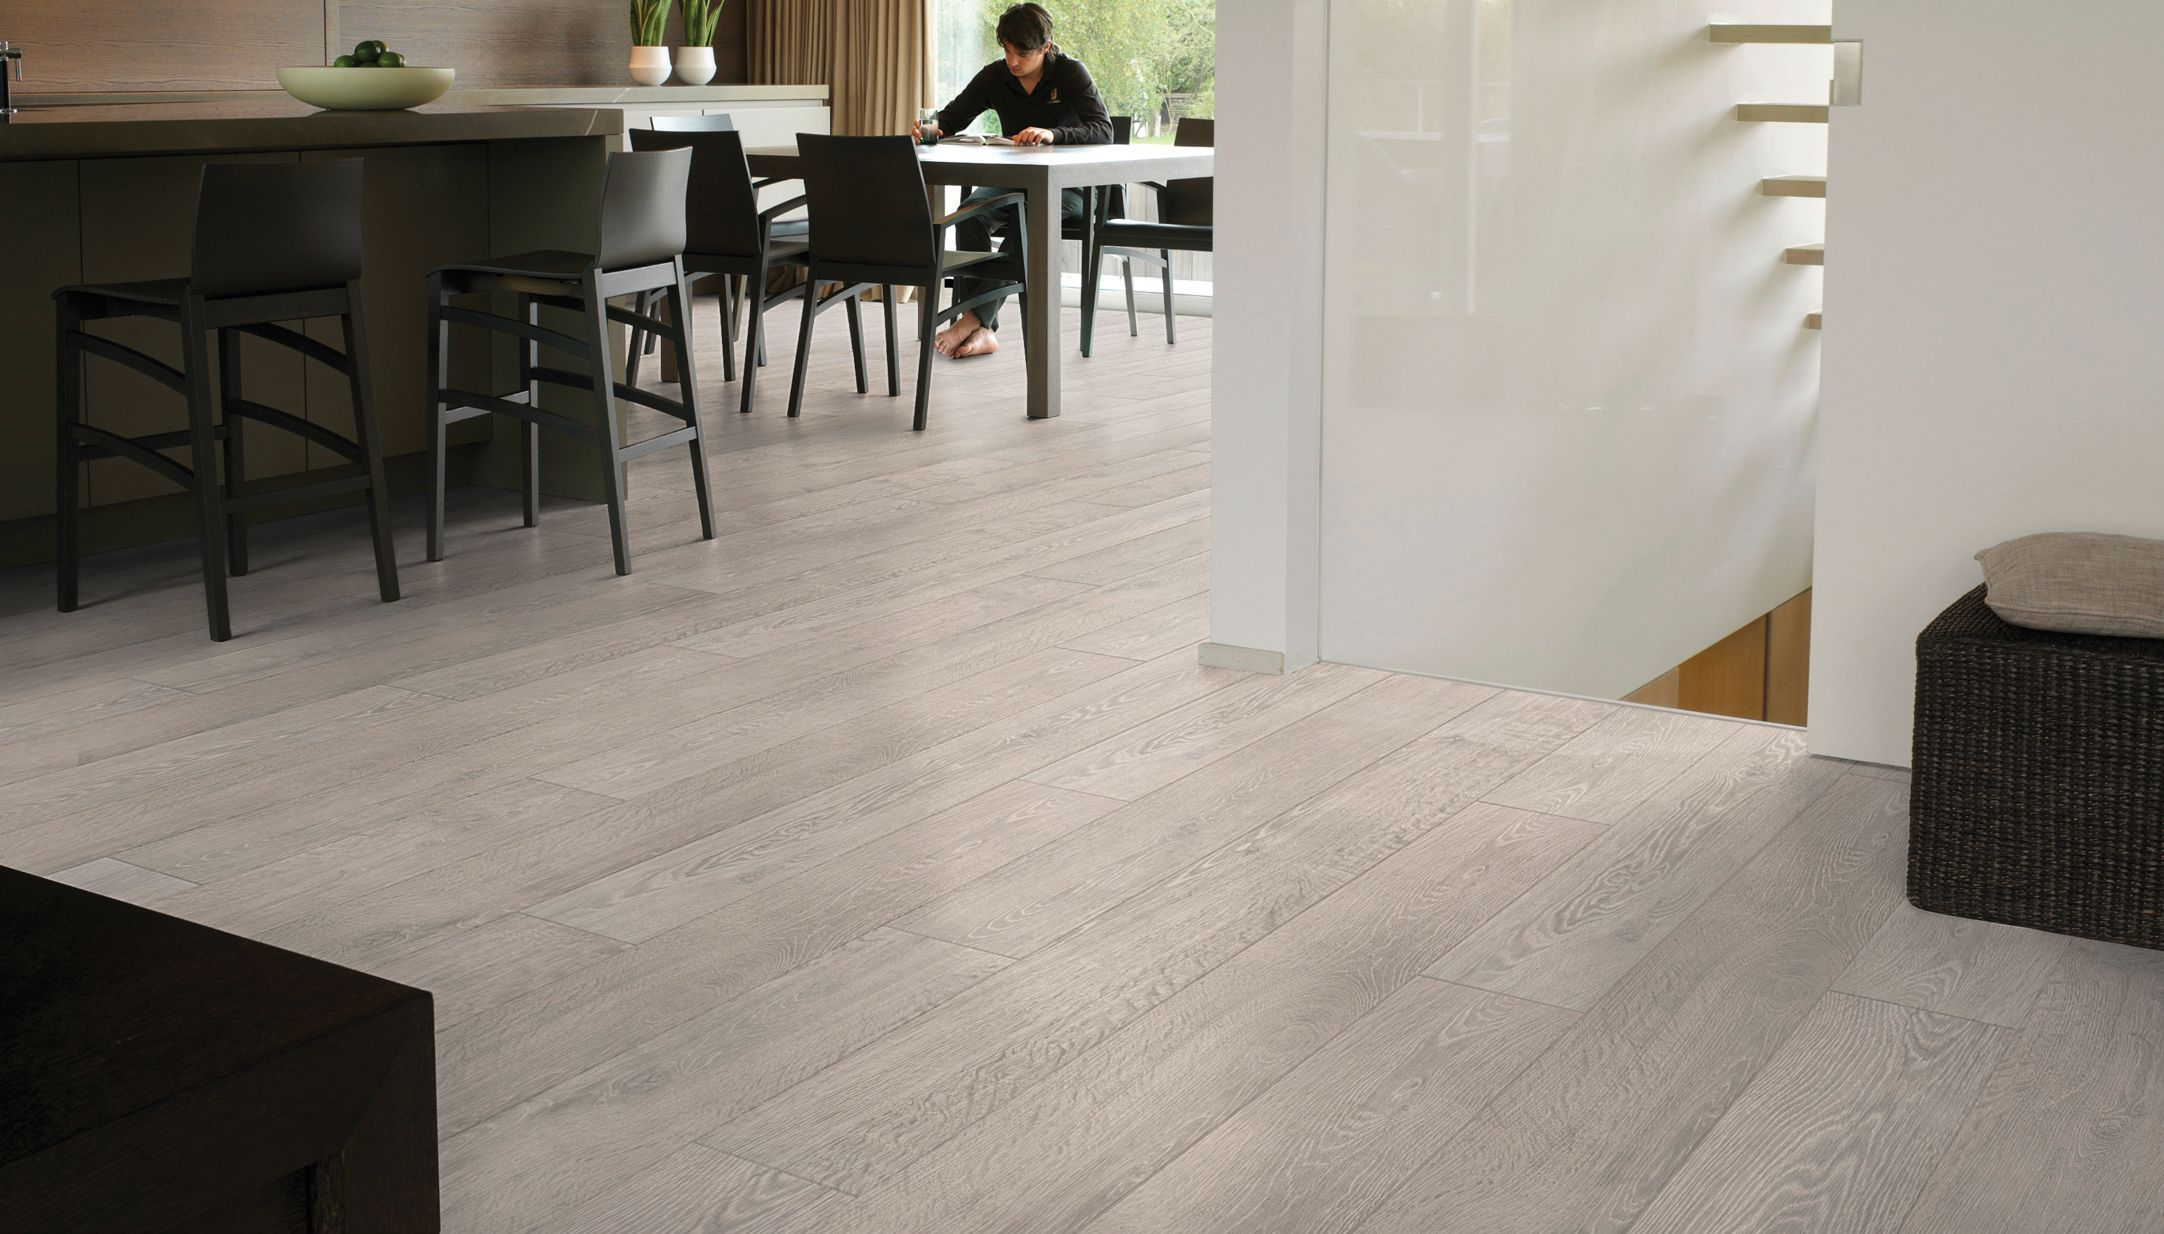 Largo wide plank laminate flooring collection flooring for Laminate flooring atlanta